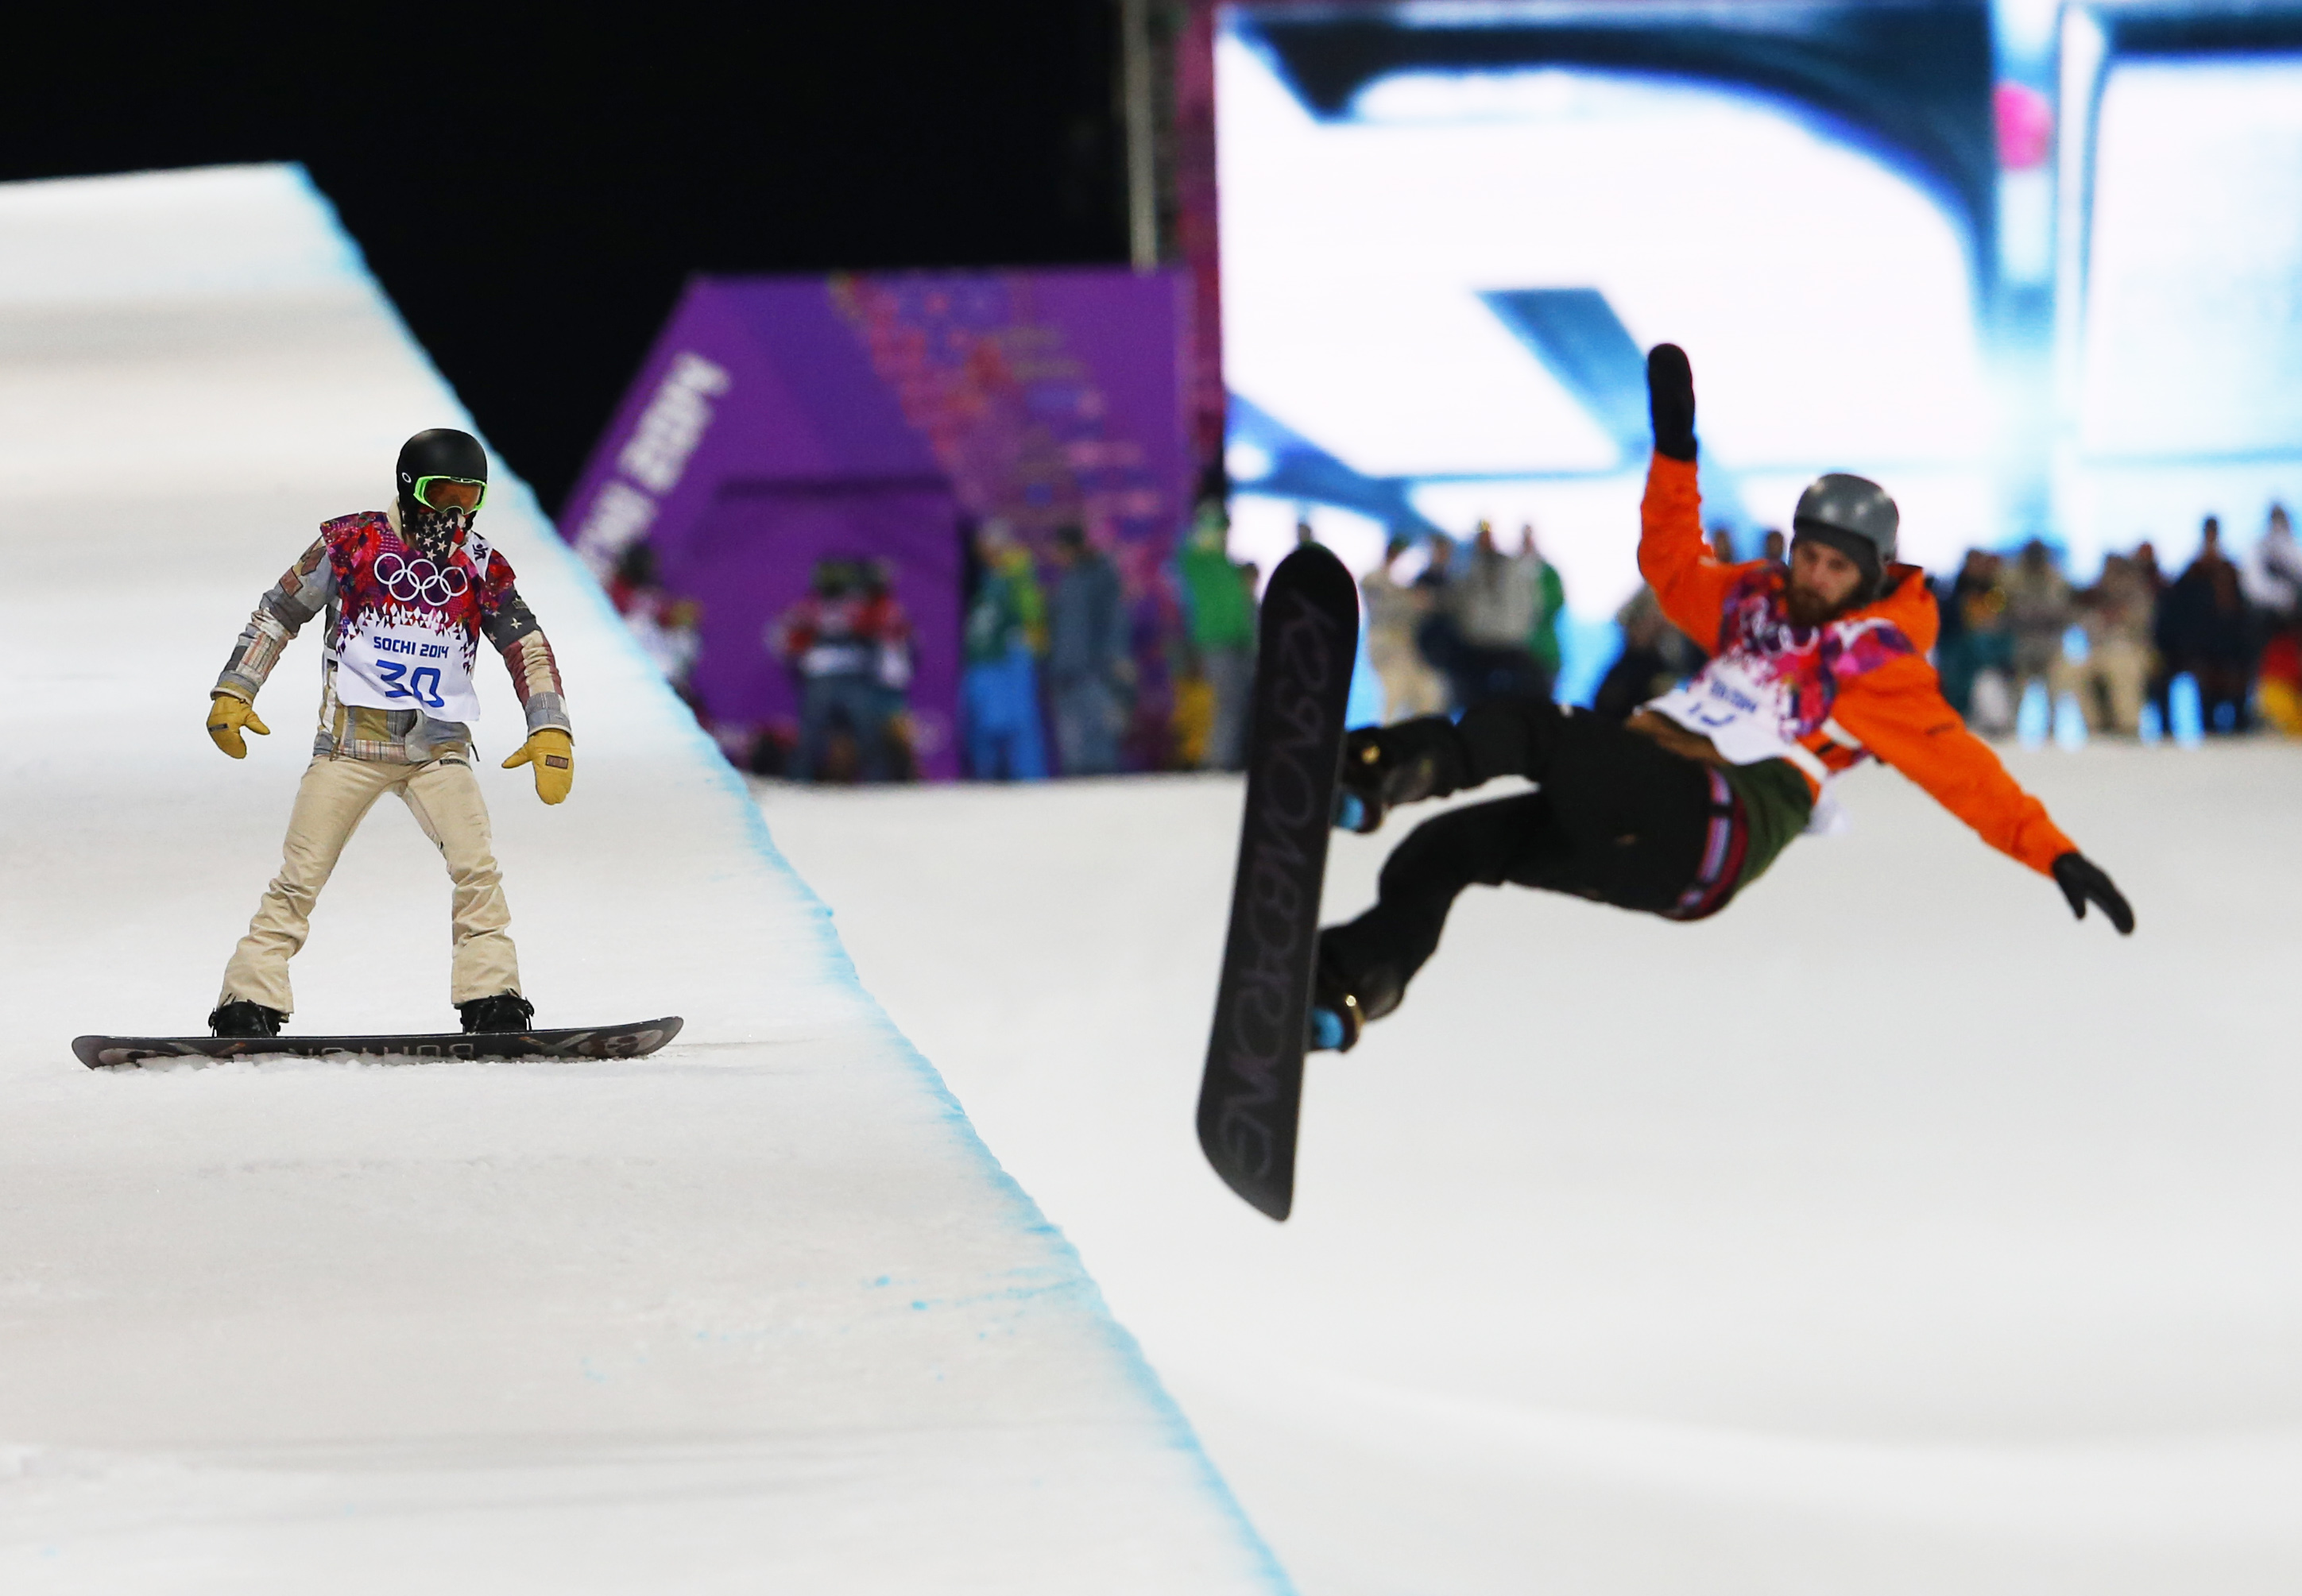 Shaun White of the United States waits on the edge of the half pipe during a snowboard half pipe training session.